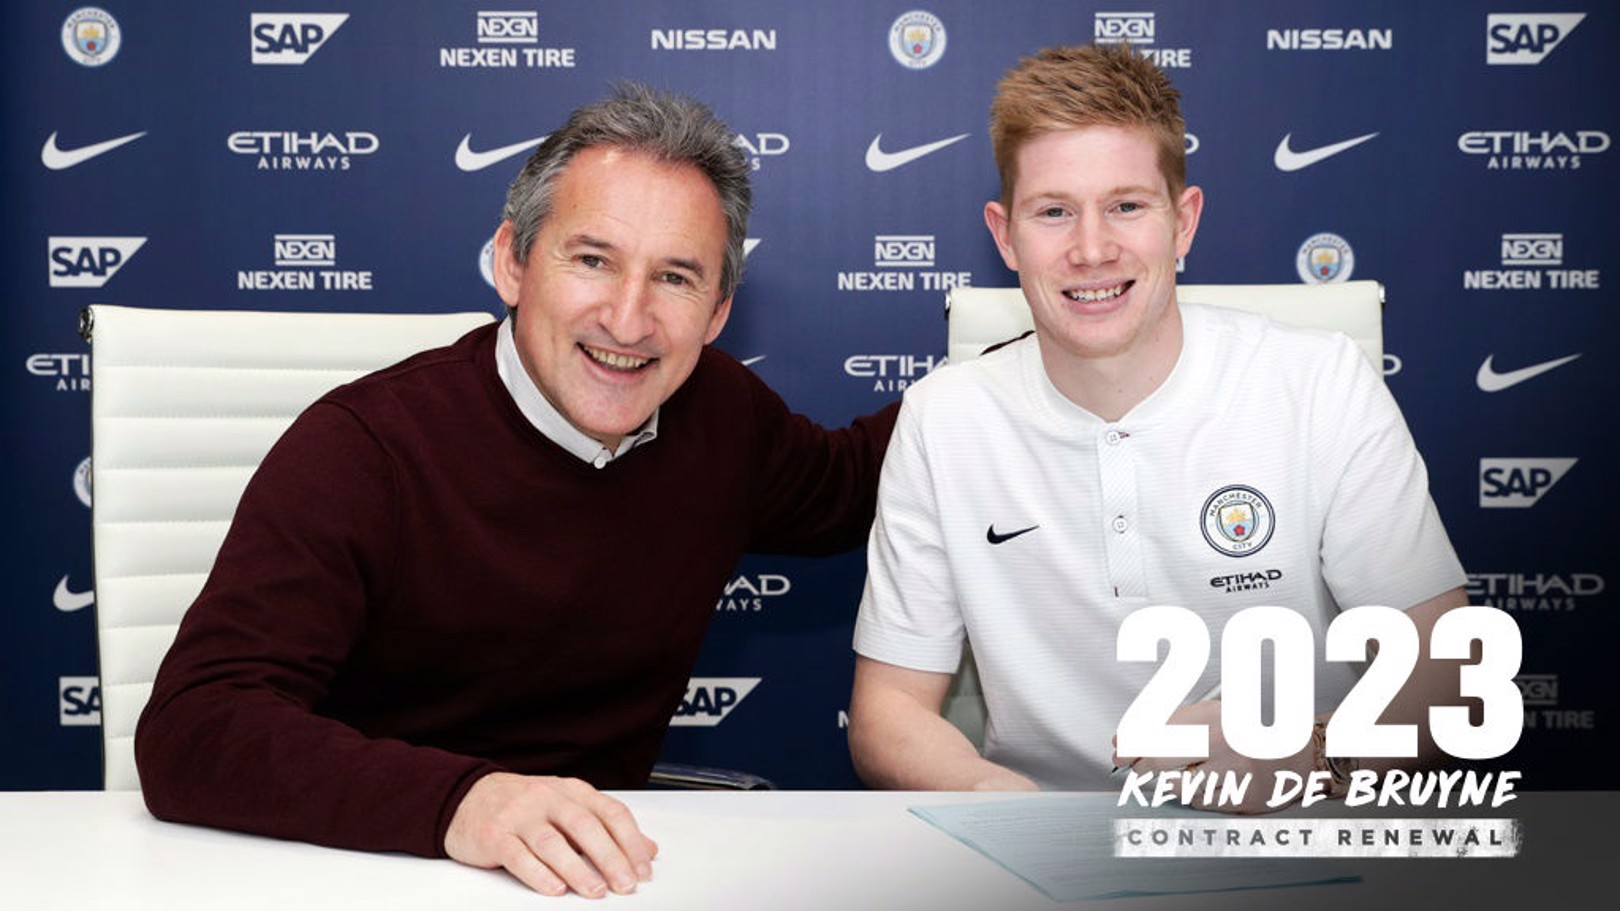 SIGNED AND SEALED: KDB pens new contract